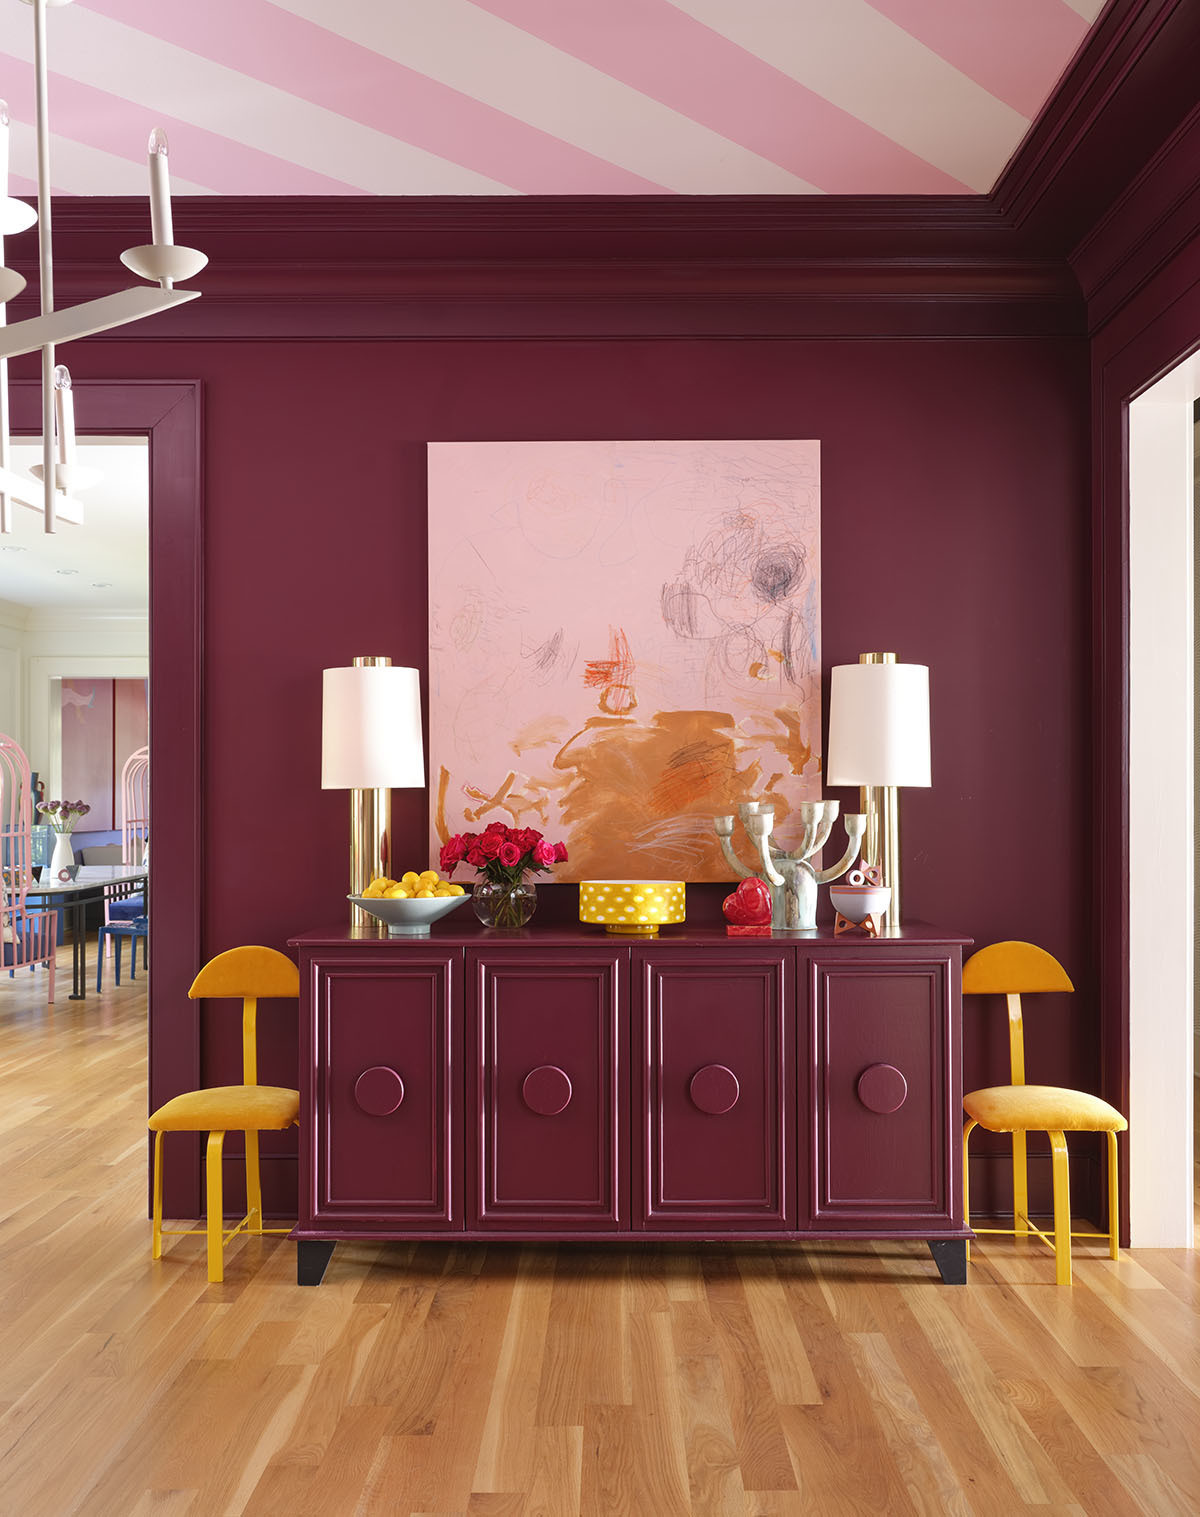 Burgundy, pink, and orange clash in the most spectacular fashion. Benjamin Moore Paint | Custom Side Board | Gillian Bryce Table Lamps | Vintage Accent Chairs | Custom Ceiling Decal | Artwork by Blehm's Children |